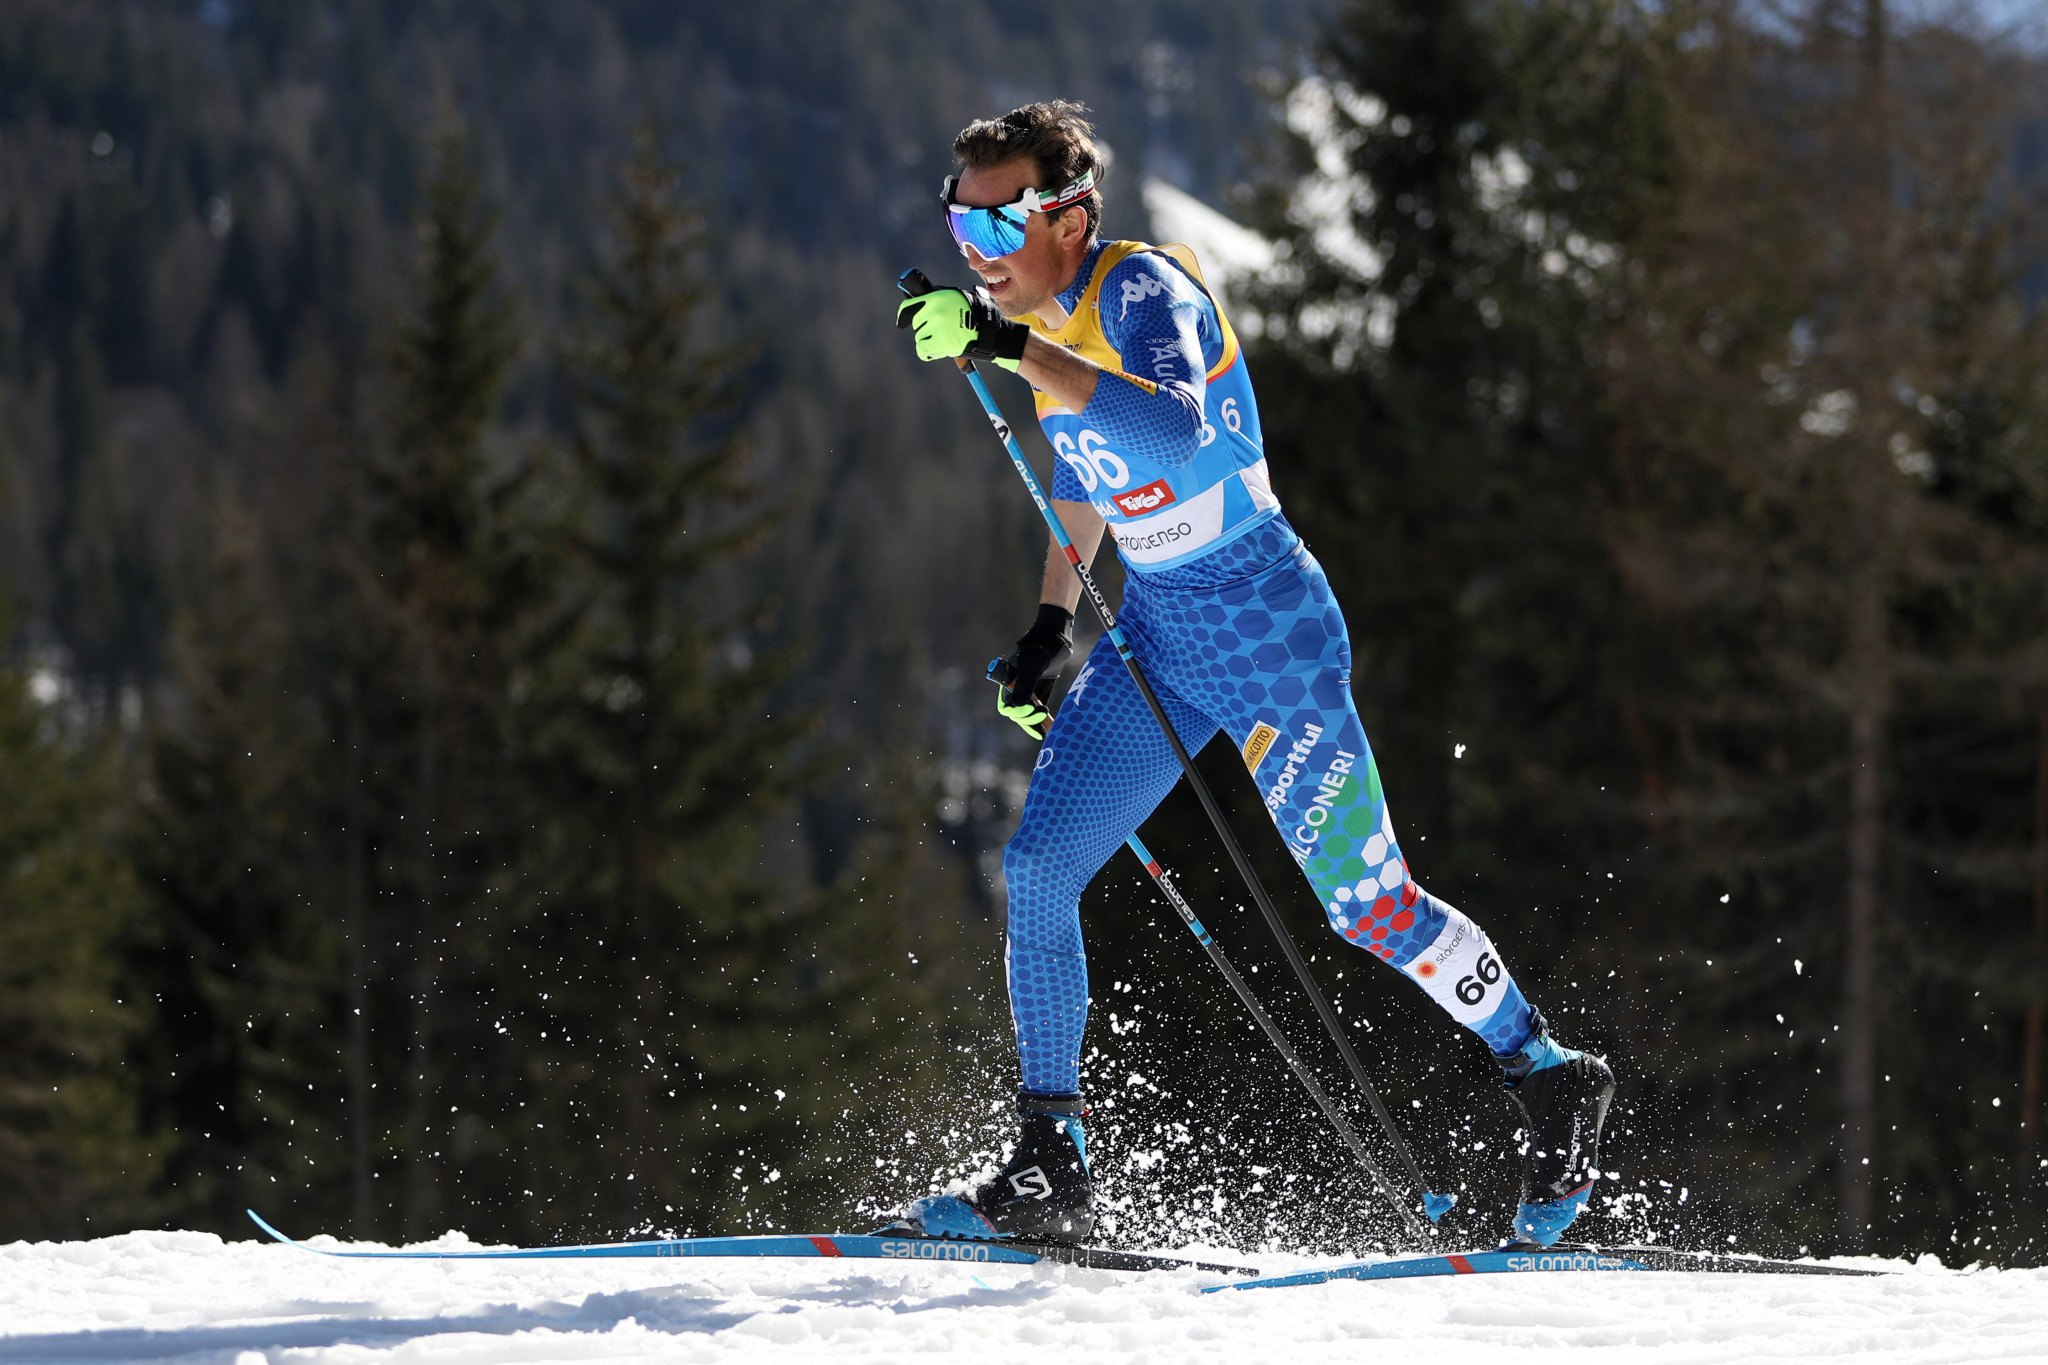 Francesco de Fabiani believes linking up with the Russian team will help him to develop as a cross-country skier ©Getty Images